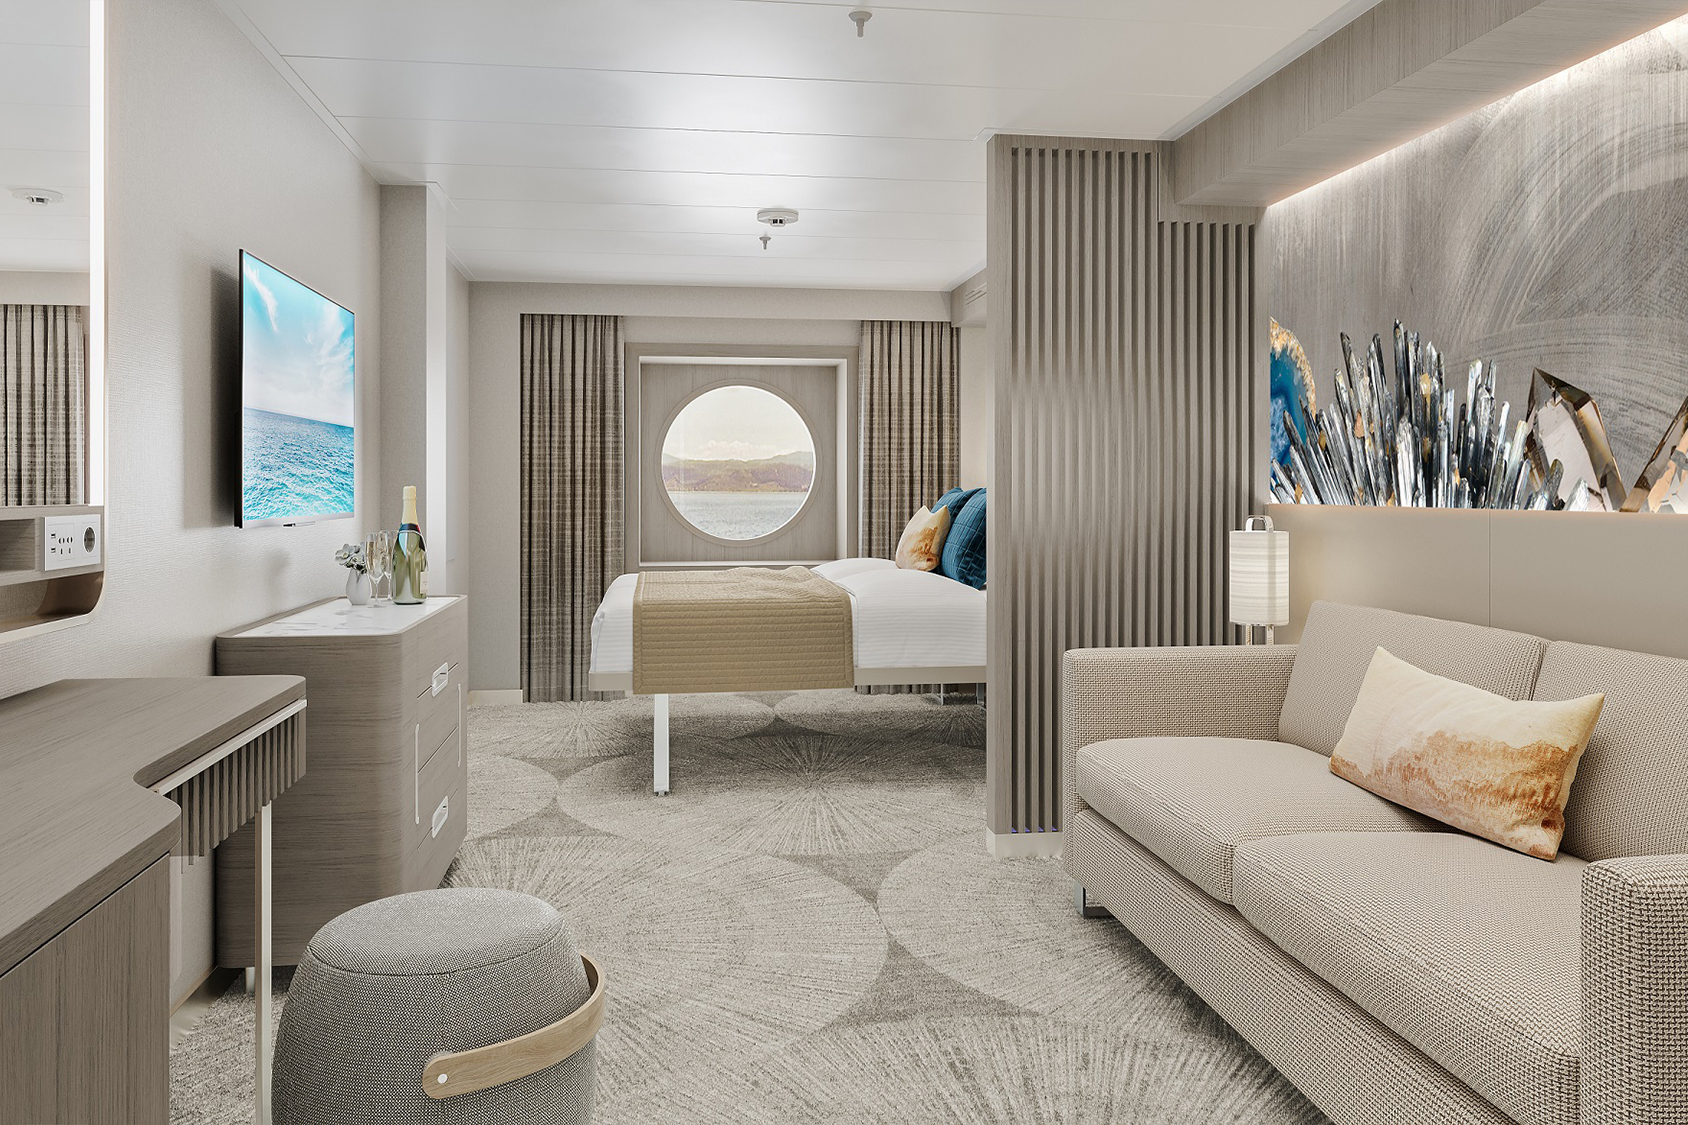 Norwegian Prima will offer the Brand's largest-ever inside, oceanview and balcony staterooms, including the Brand's largest-ever bathrooms and showers for standard stateroom categories.